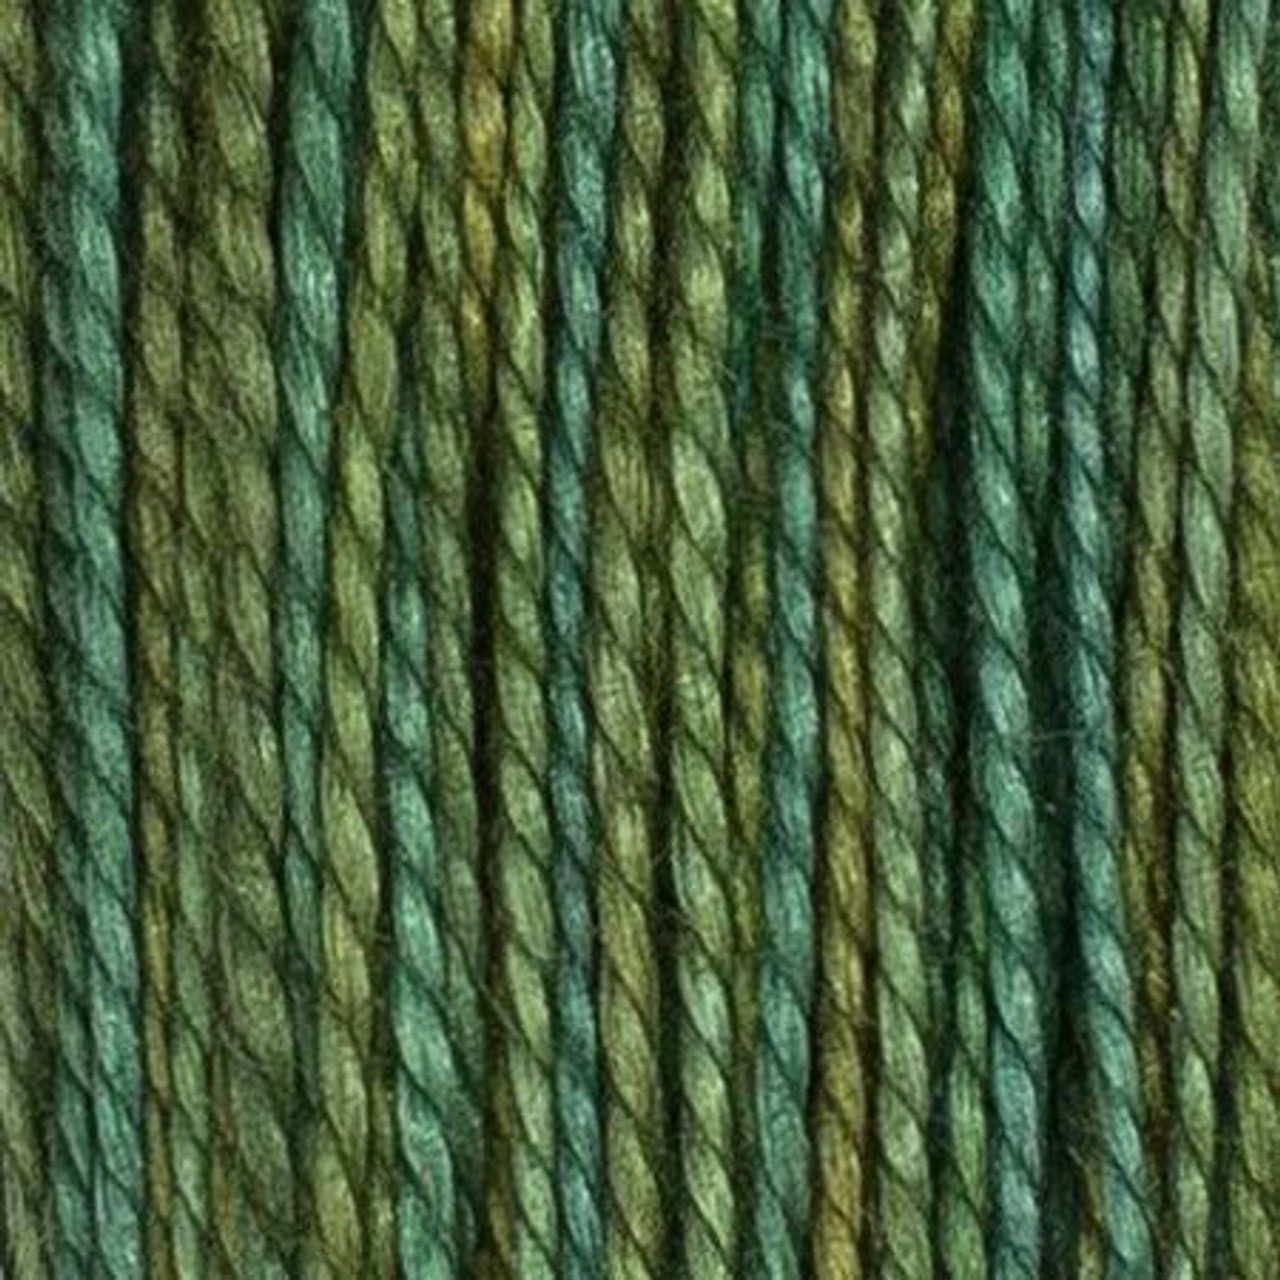 House of Embroidery : 8wt Perle Cotton - Bluegum (5A)